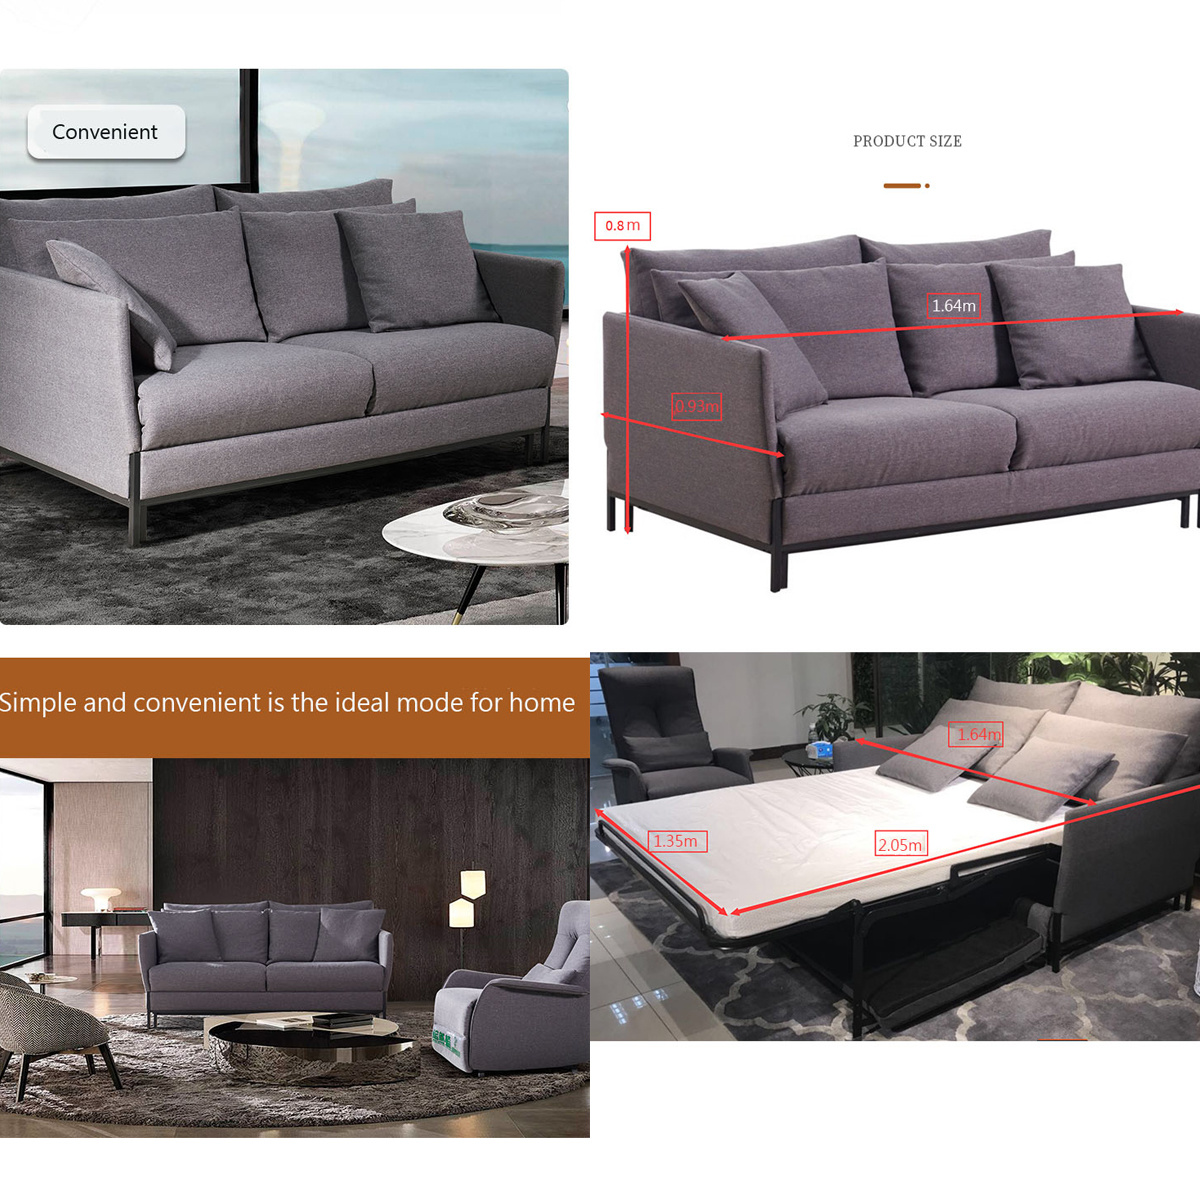 Multifunctional Foldable Double Bed Sofa Made in China